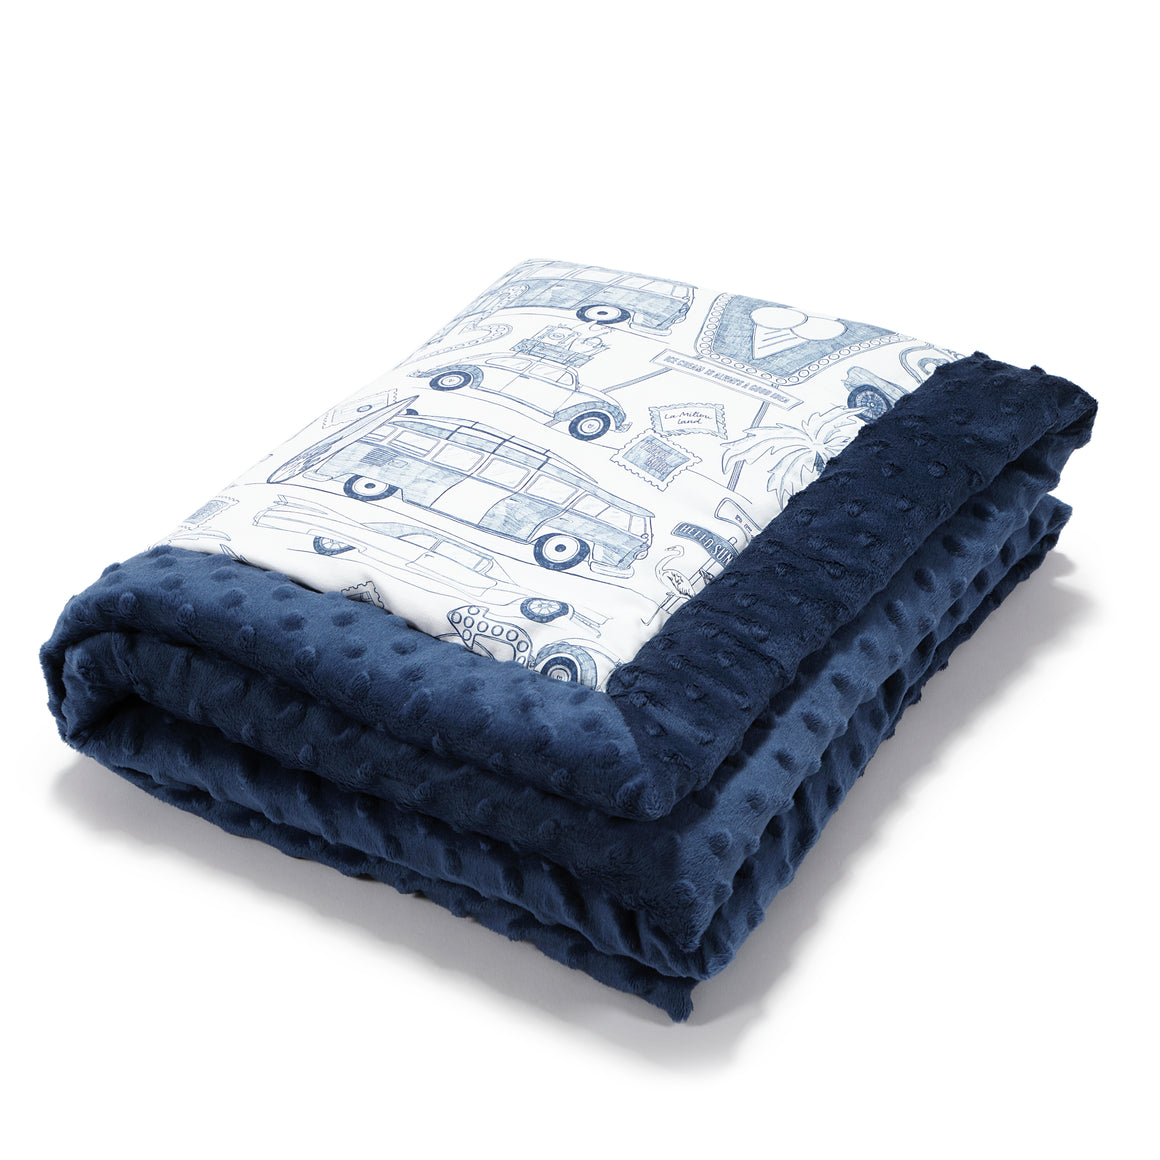 NEWBORN BLANKET peitto - Route 66 | Navy